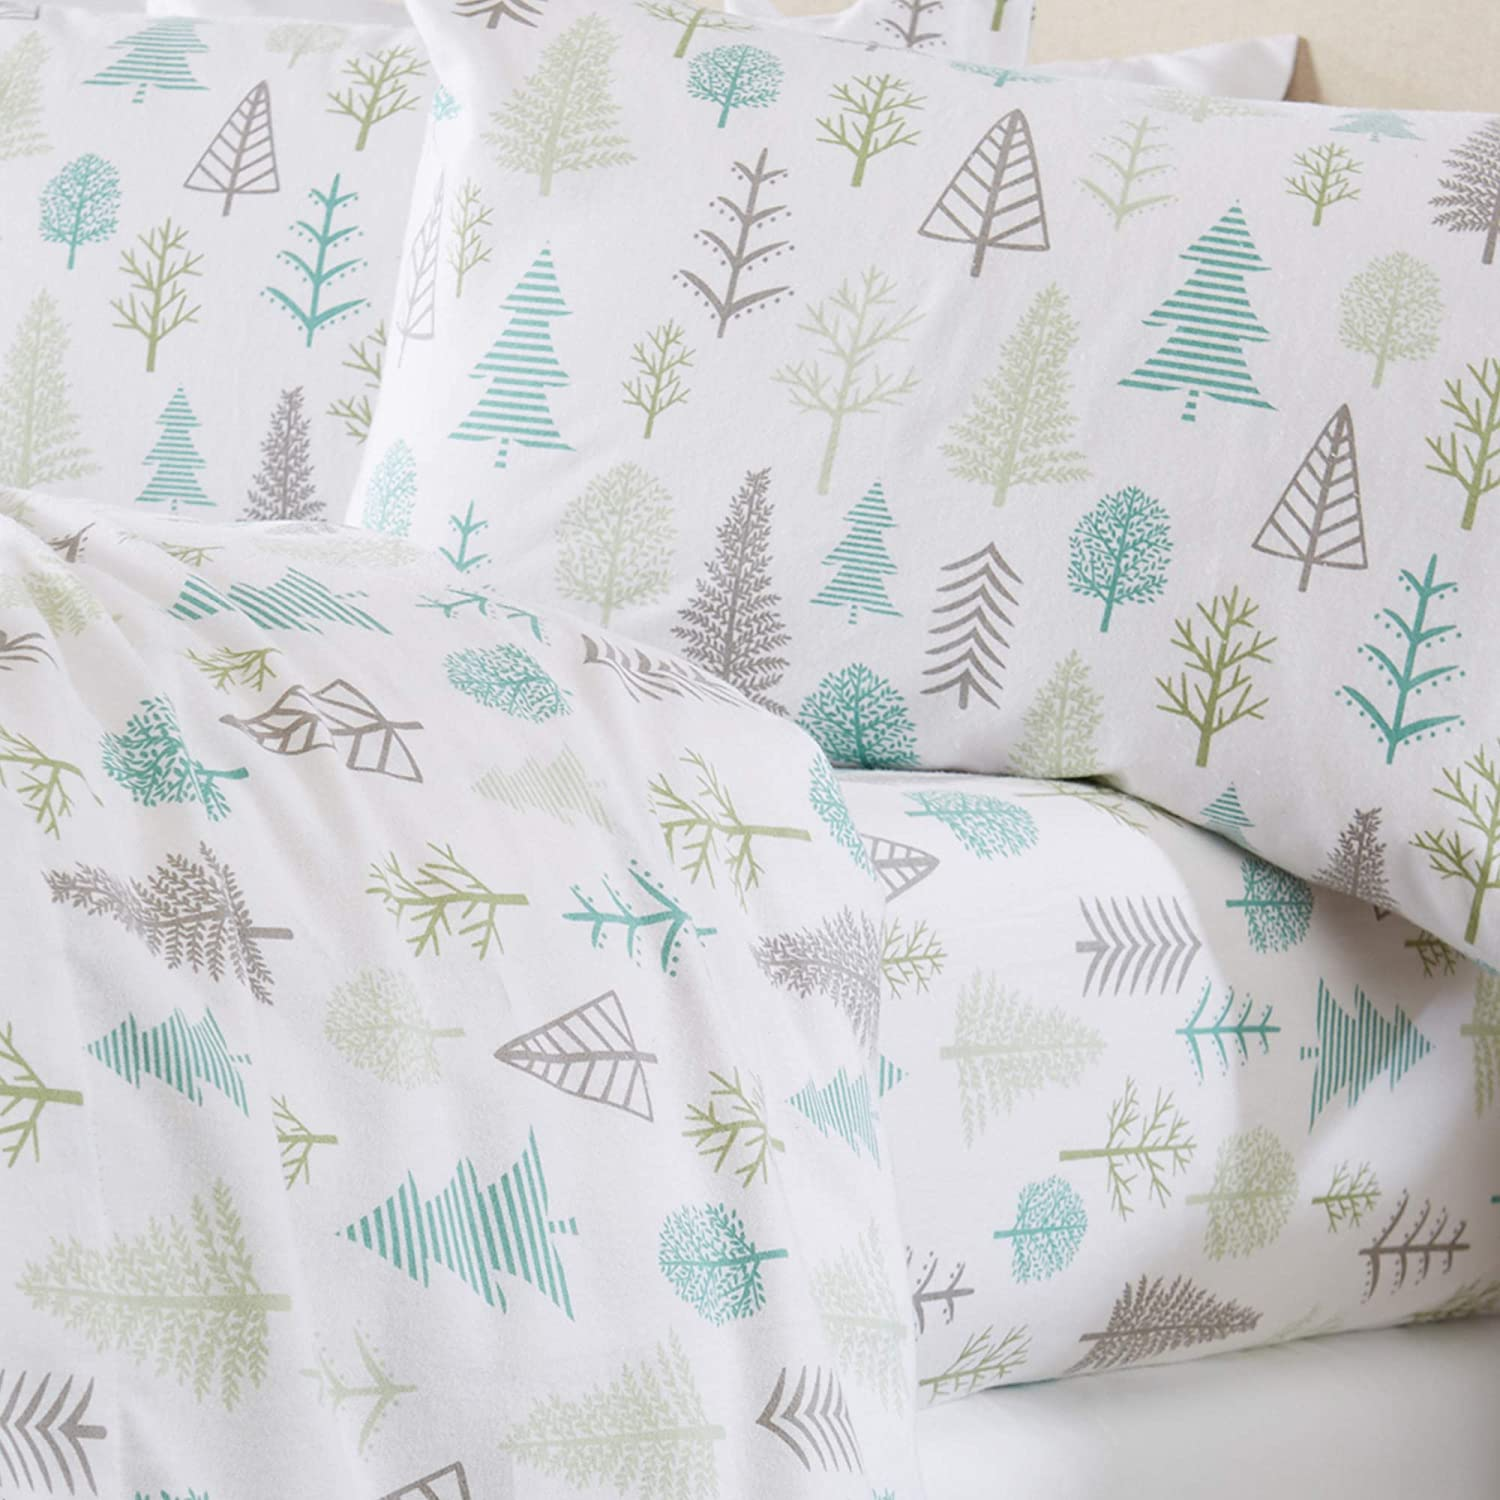 Home Fashion Designs Stratton Collection Extra Soft Printed 100% Turkish Cotton Flannel Sheet Set. Warm, Cozy, Lightweight, Luxury Winter Bed Sheets. (King, Winter Forest)